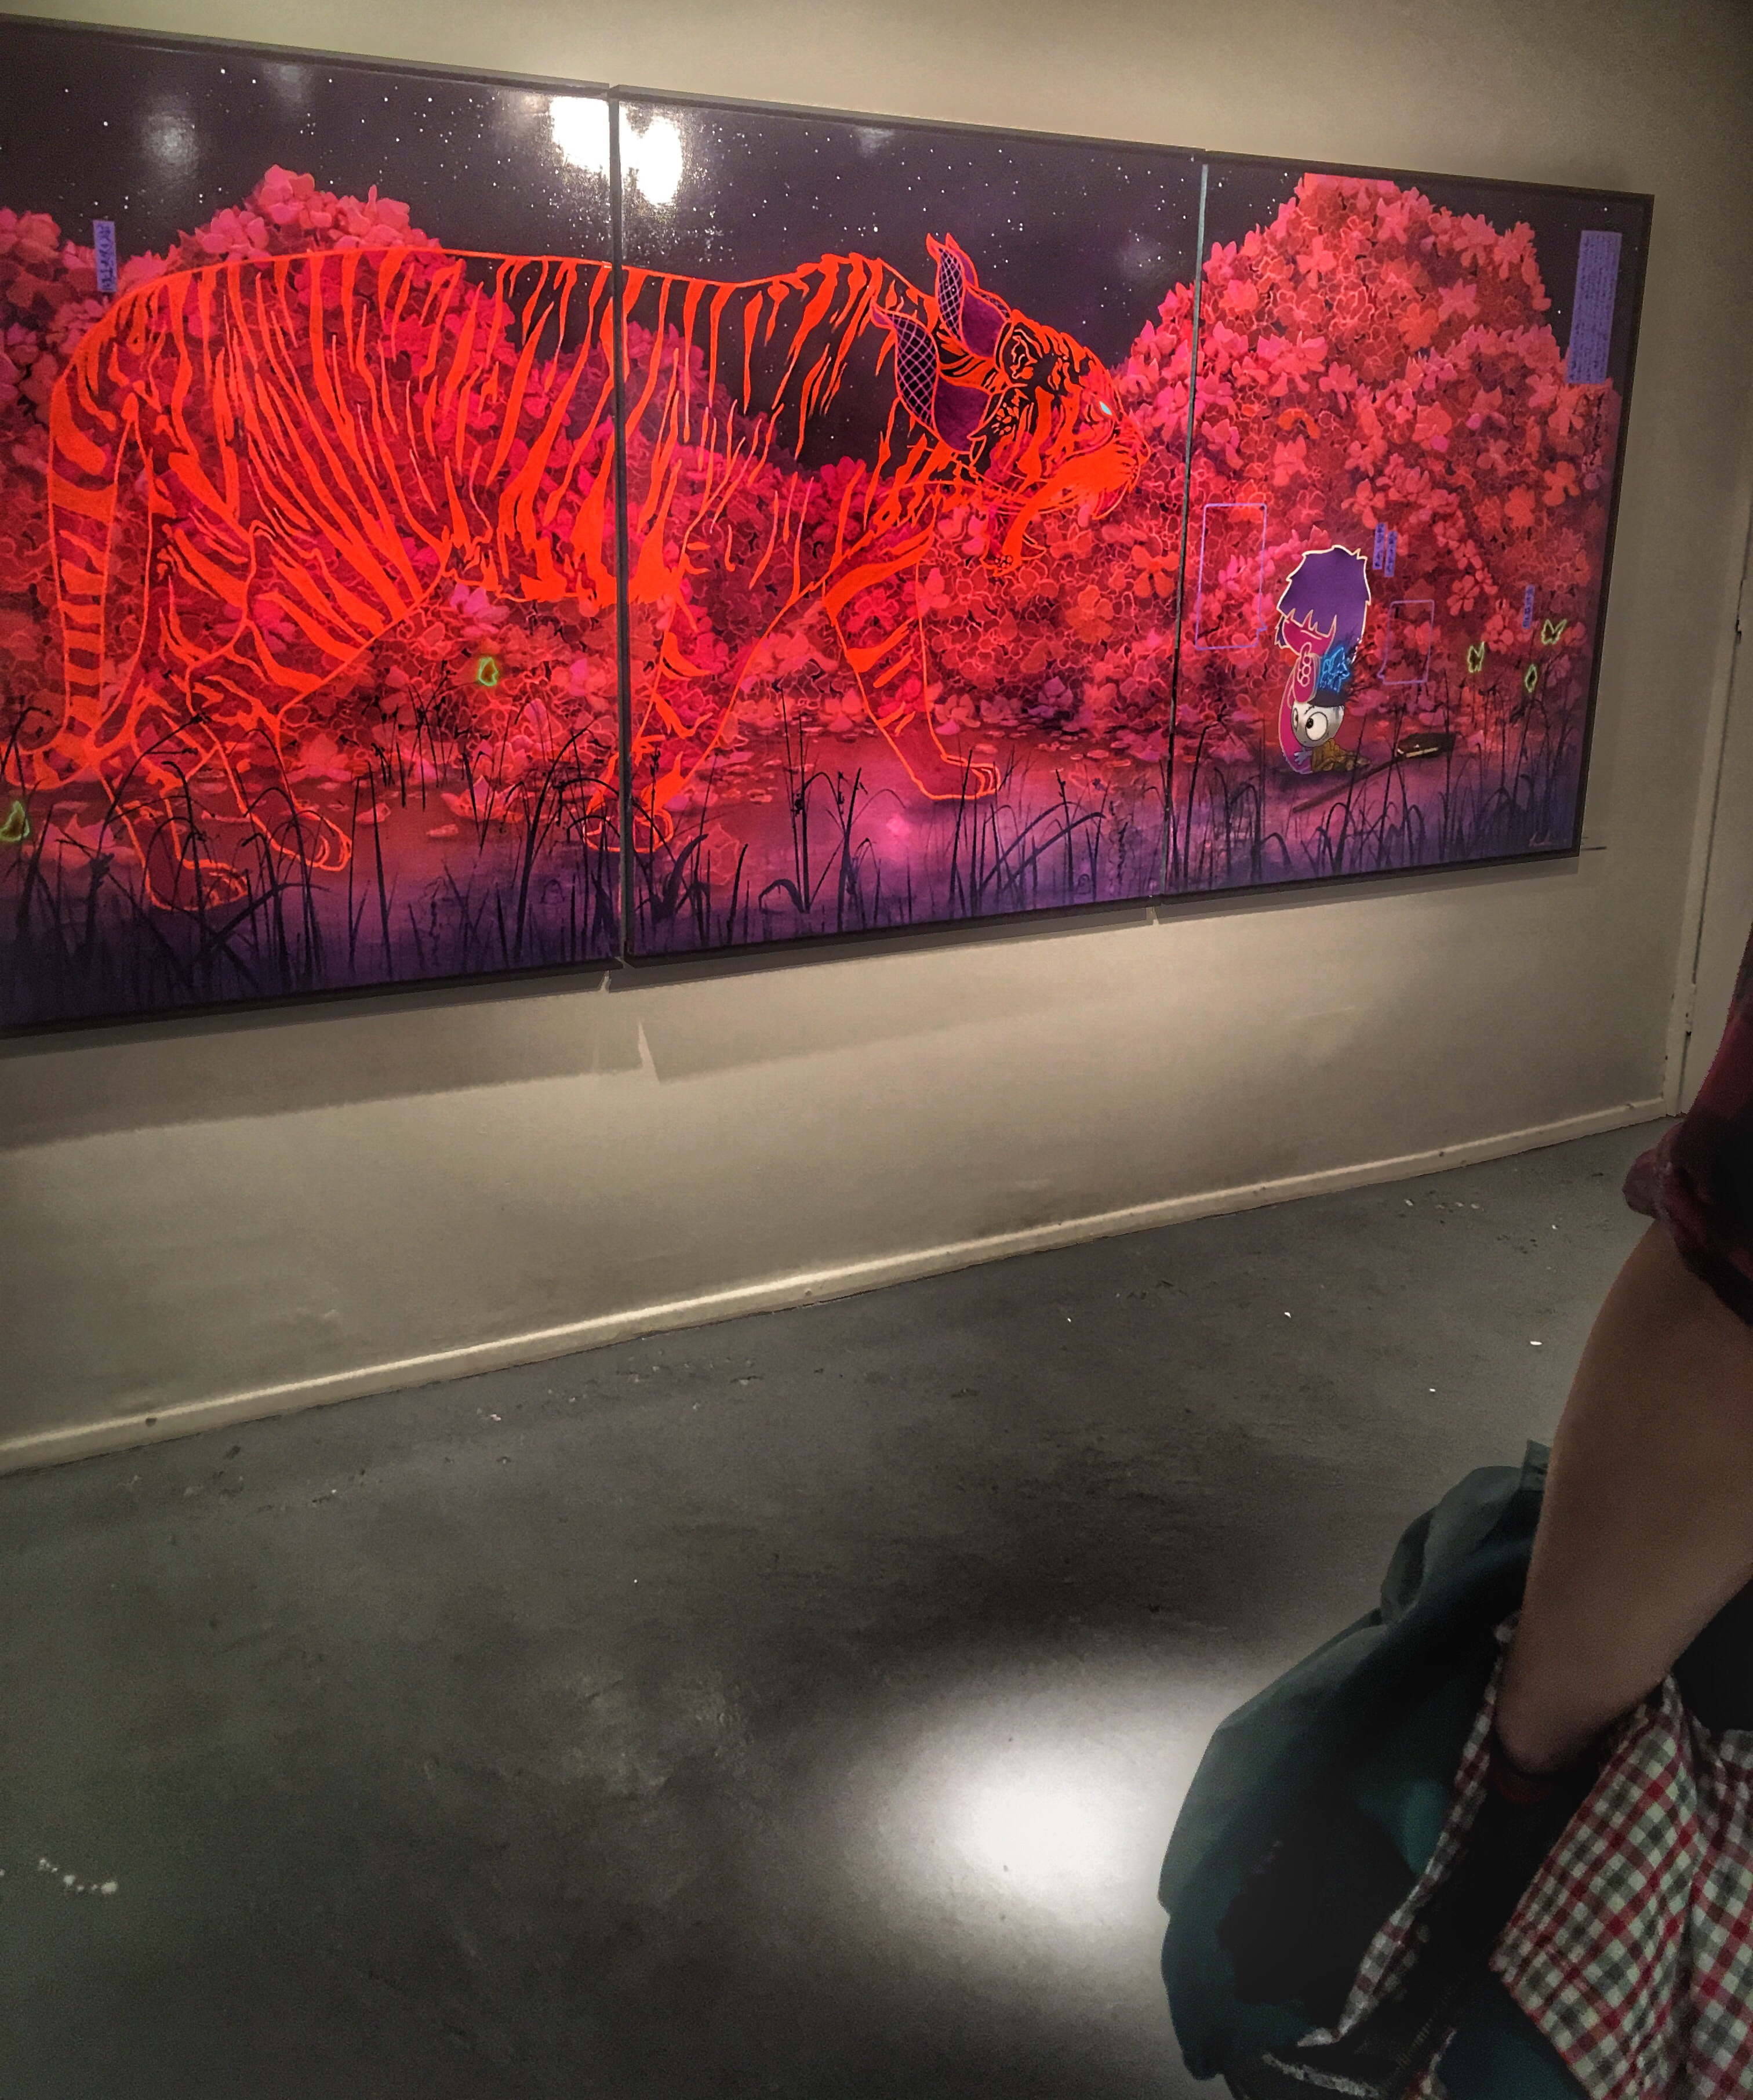 Megan Megan & The Chaos Blossom by British artist Tom Lewis taken by ray sang from his London solo art show in Mayfair